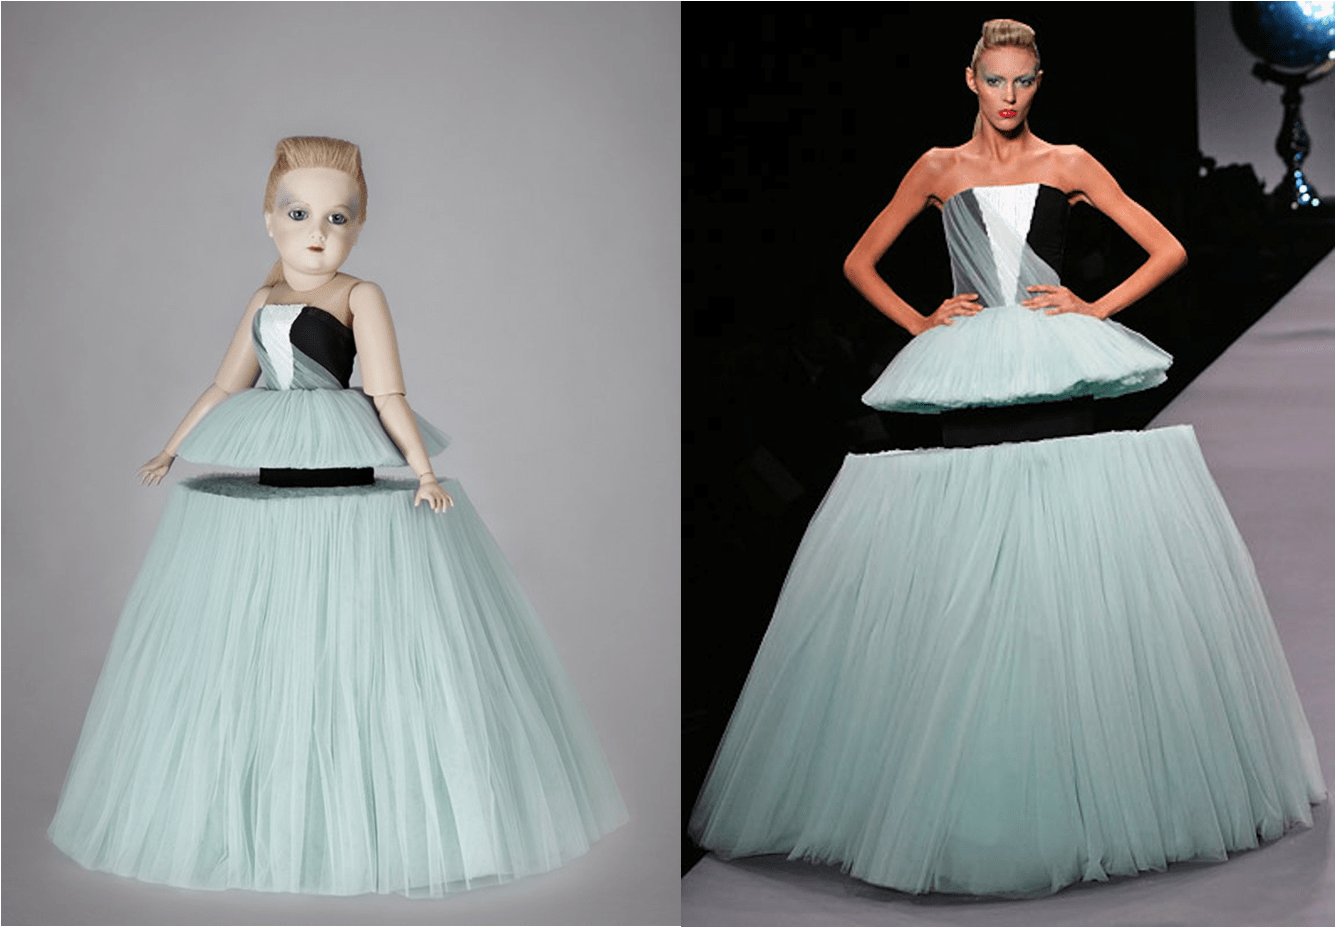 Viktor-and-Rolf-dolls-TheLuxuryTrends